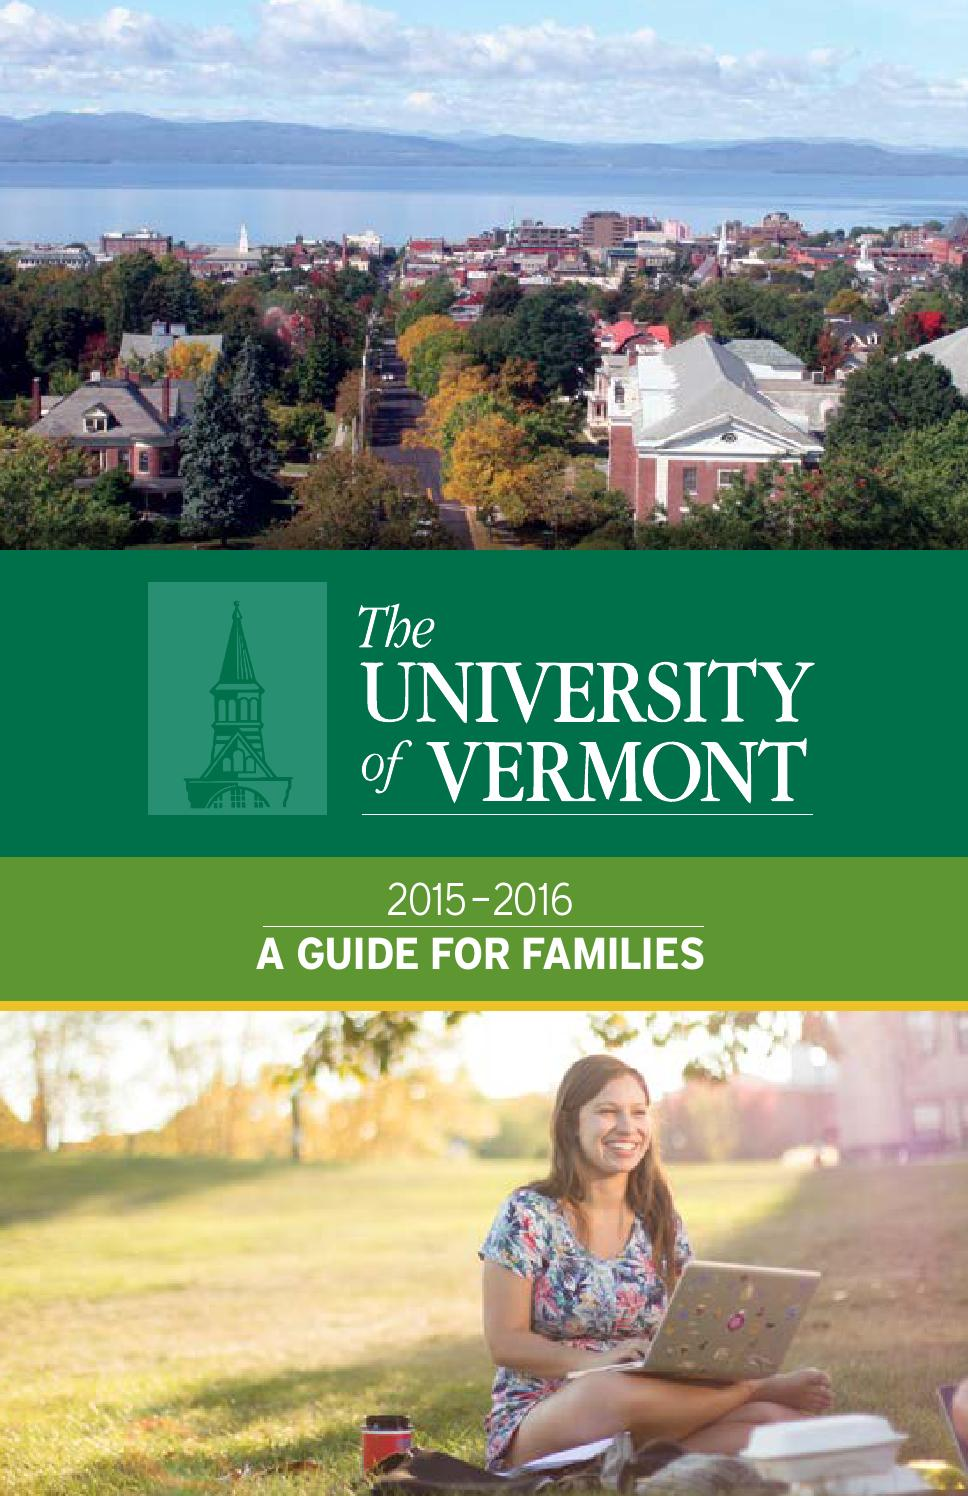 University of Vermont 2015-2016 Guide for Families by ... on